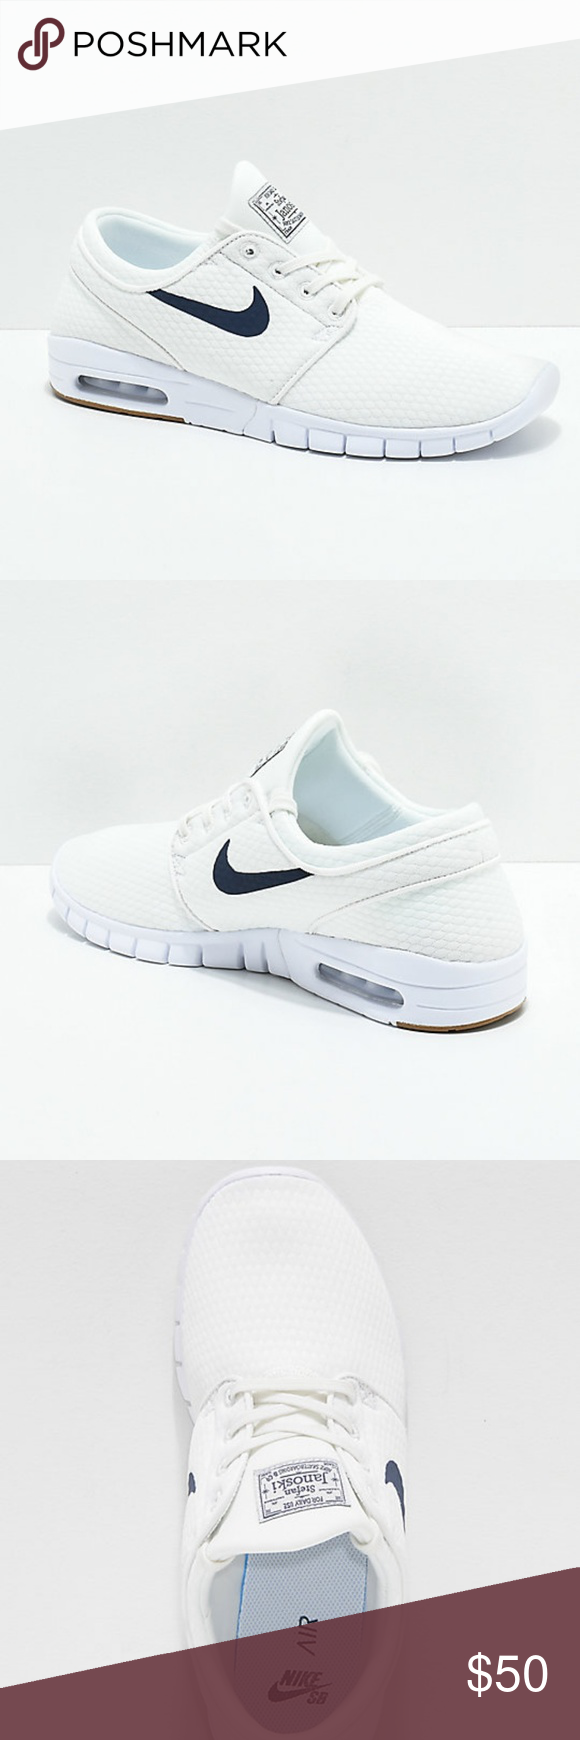 fd3677a05bce Nike SB Janoski Air Max Quilted Skate Shoes Nike SB Janoski Air Max Quilted  Summit White